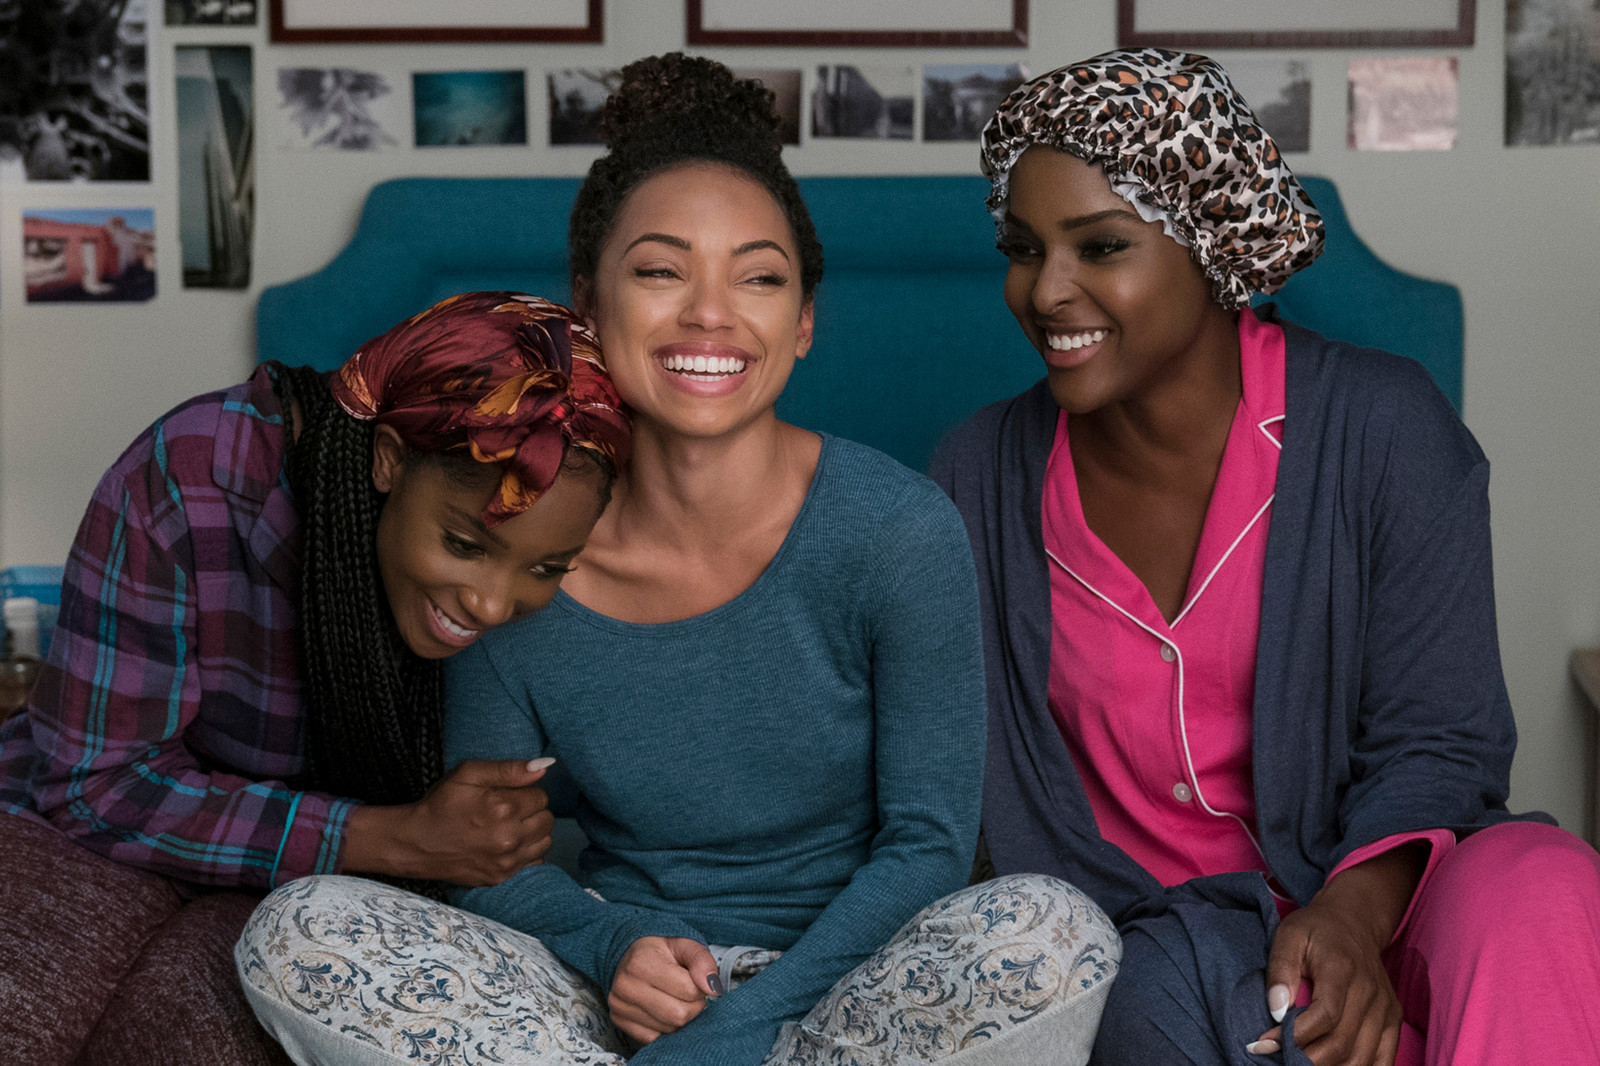 Best College-Themed Shows and Movies To Watch TV Show Entertainment Grown-ish Yara Shahidi Chloe & Halle Trevor Jackson Chloe & Halle Luka Sabbat Francia Raisa Emily Arlook